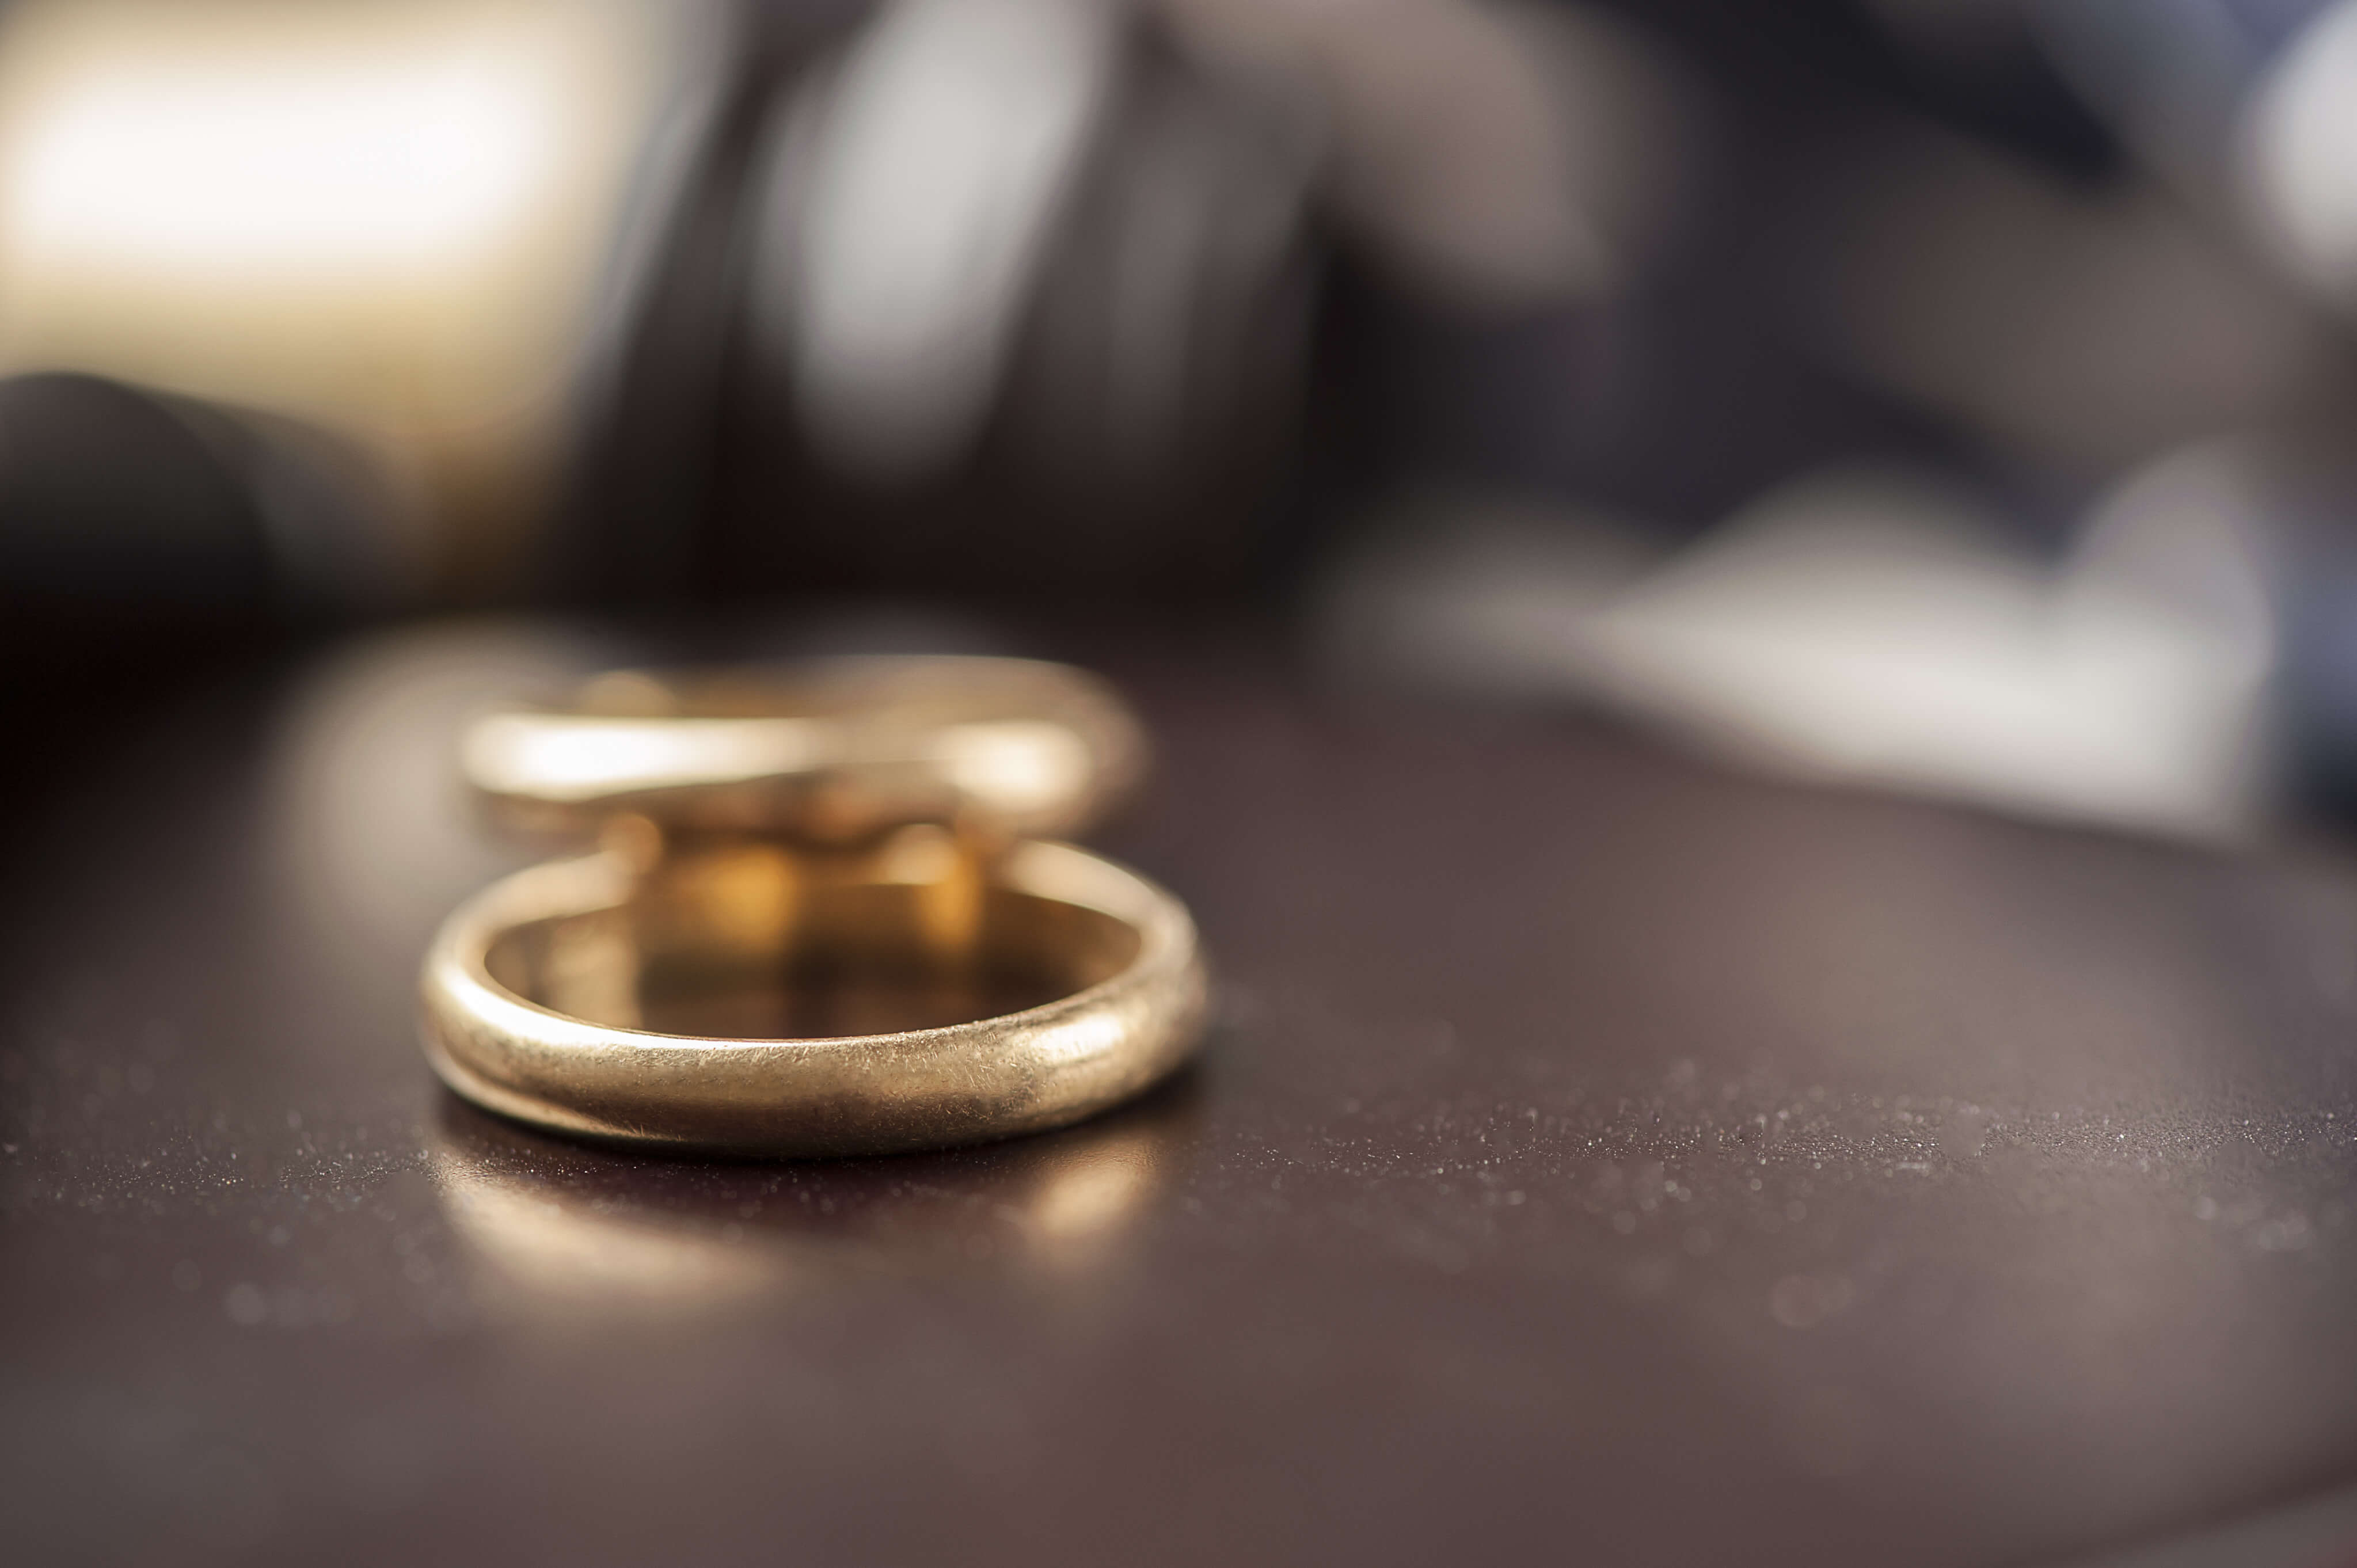 Wedding rings - no fault divorce cost